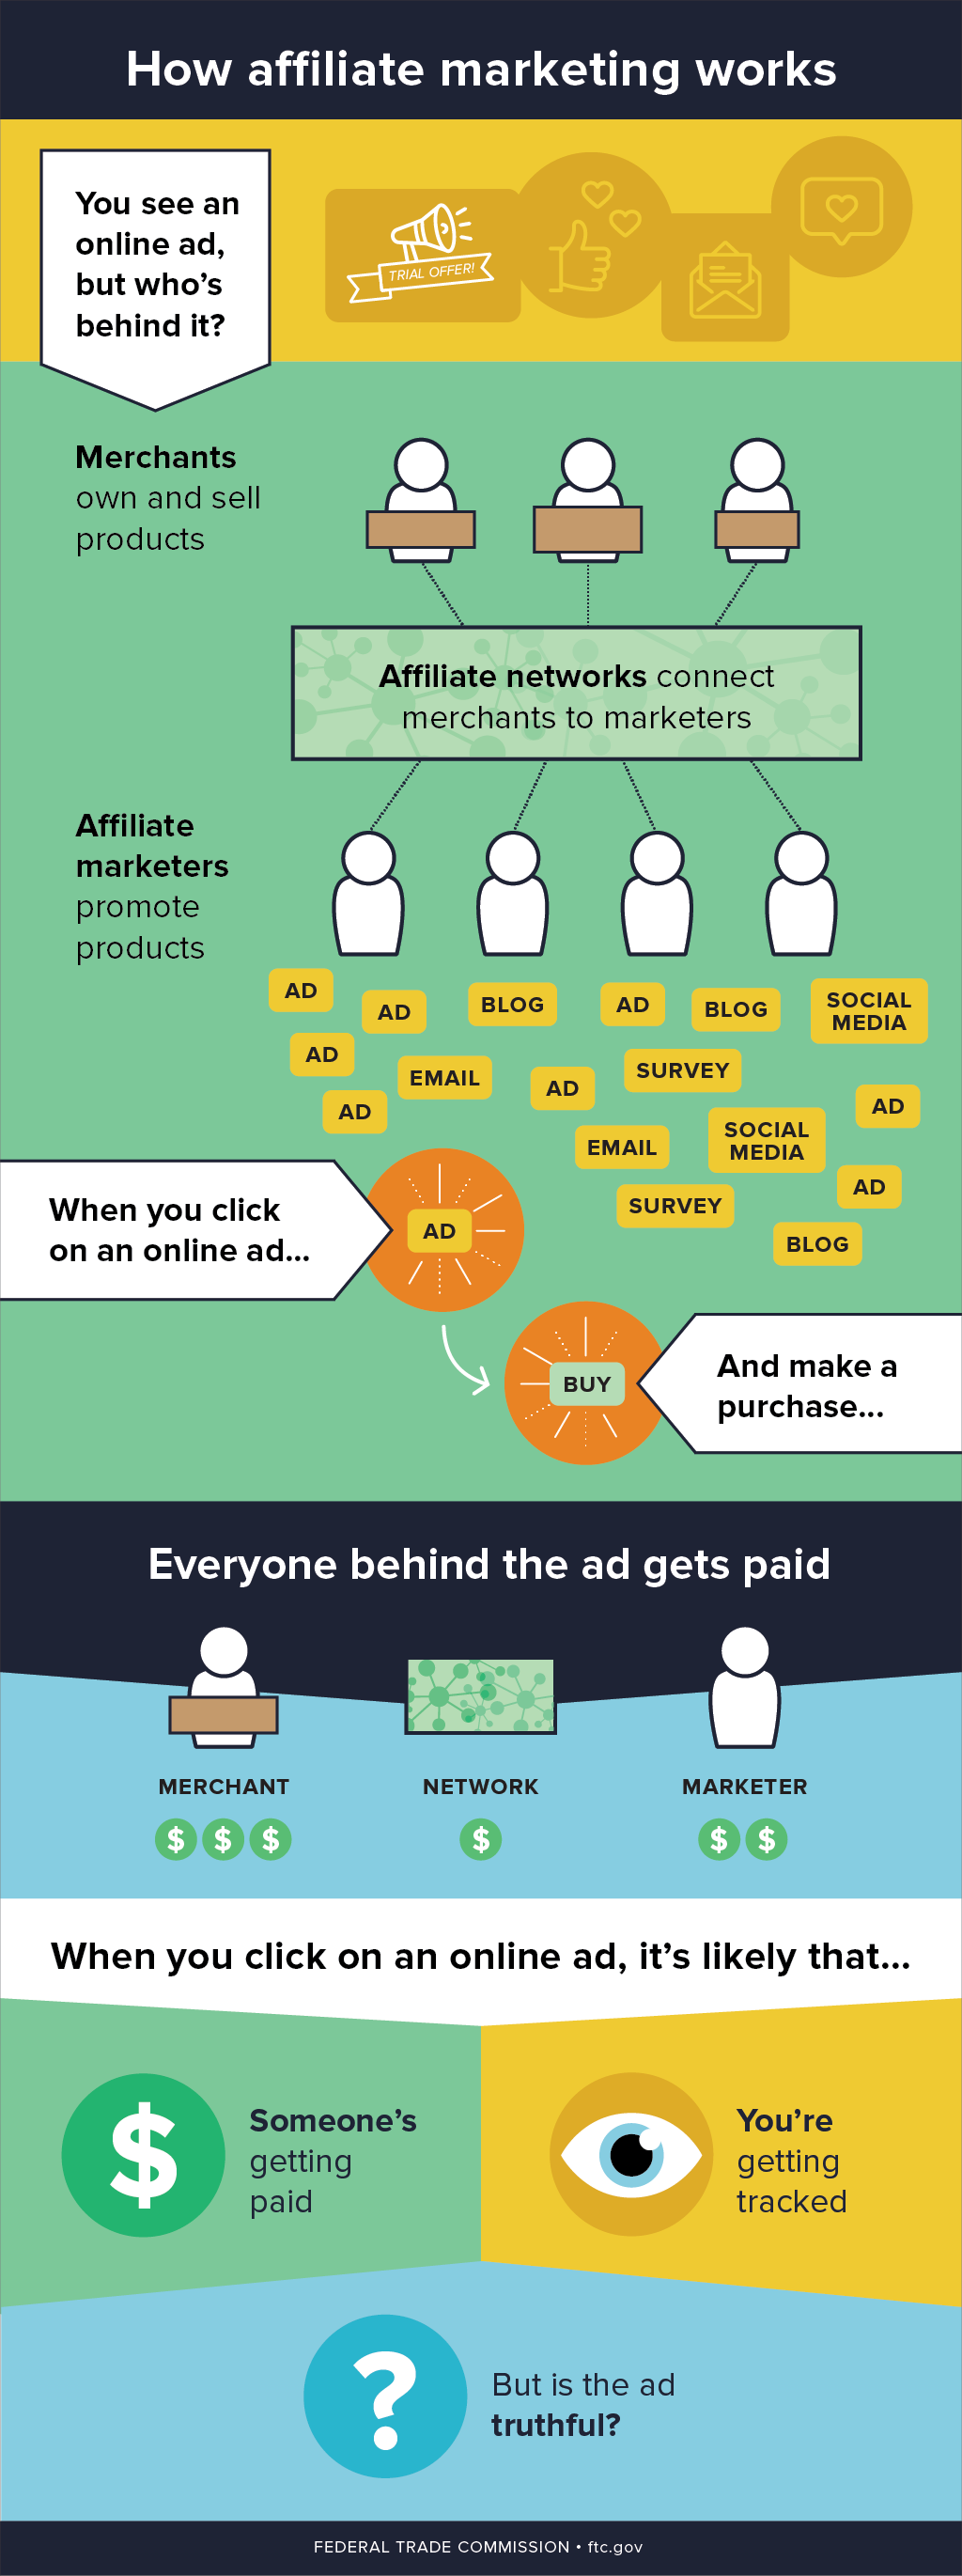 how-affiliate-marketing-works_082817.png